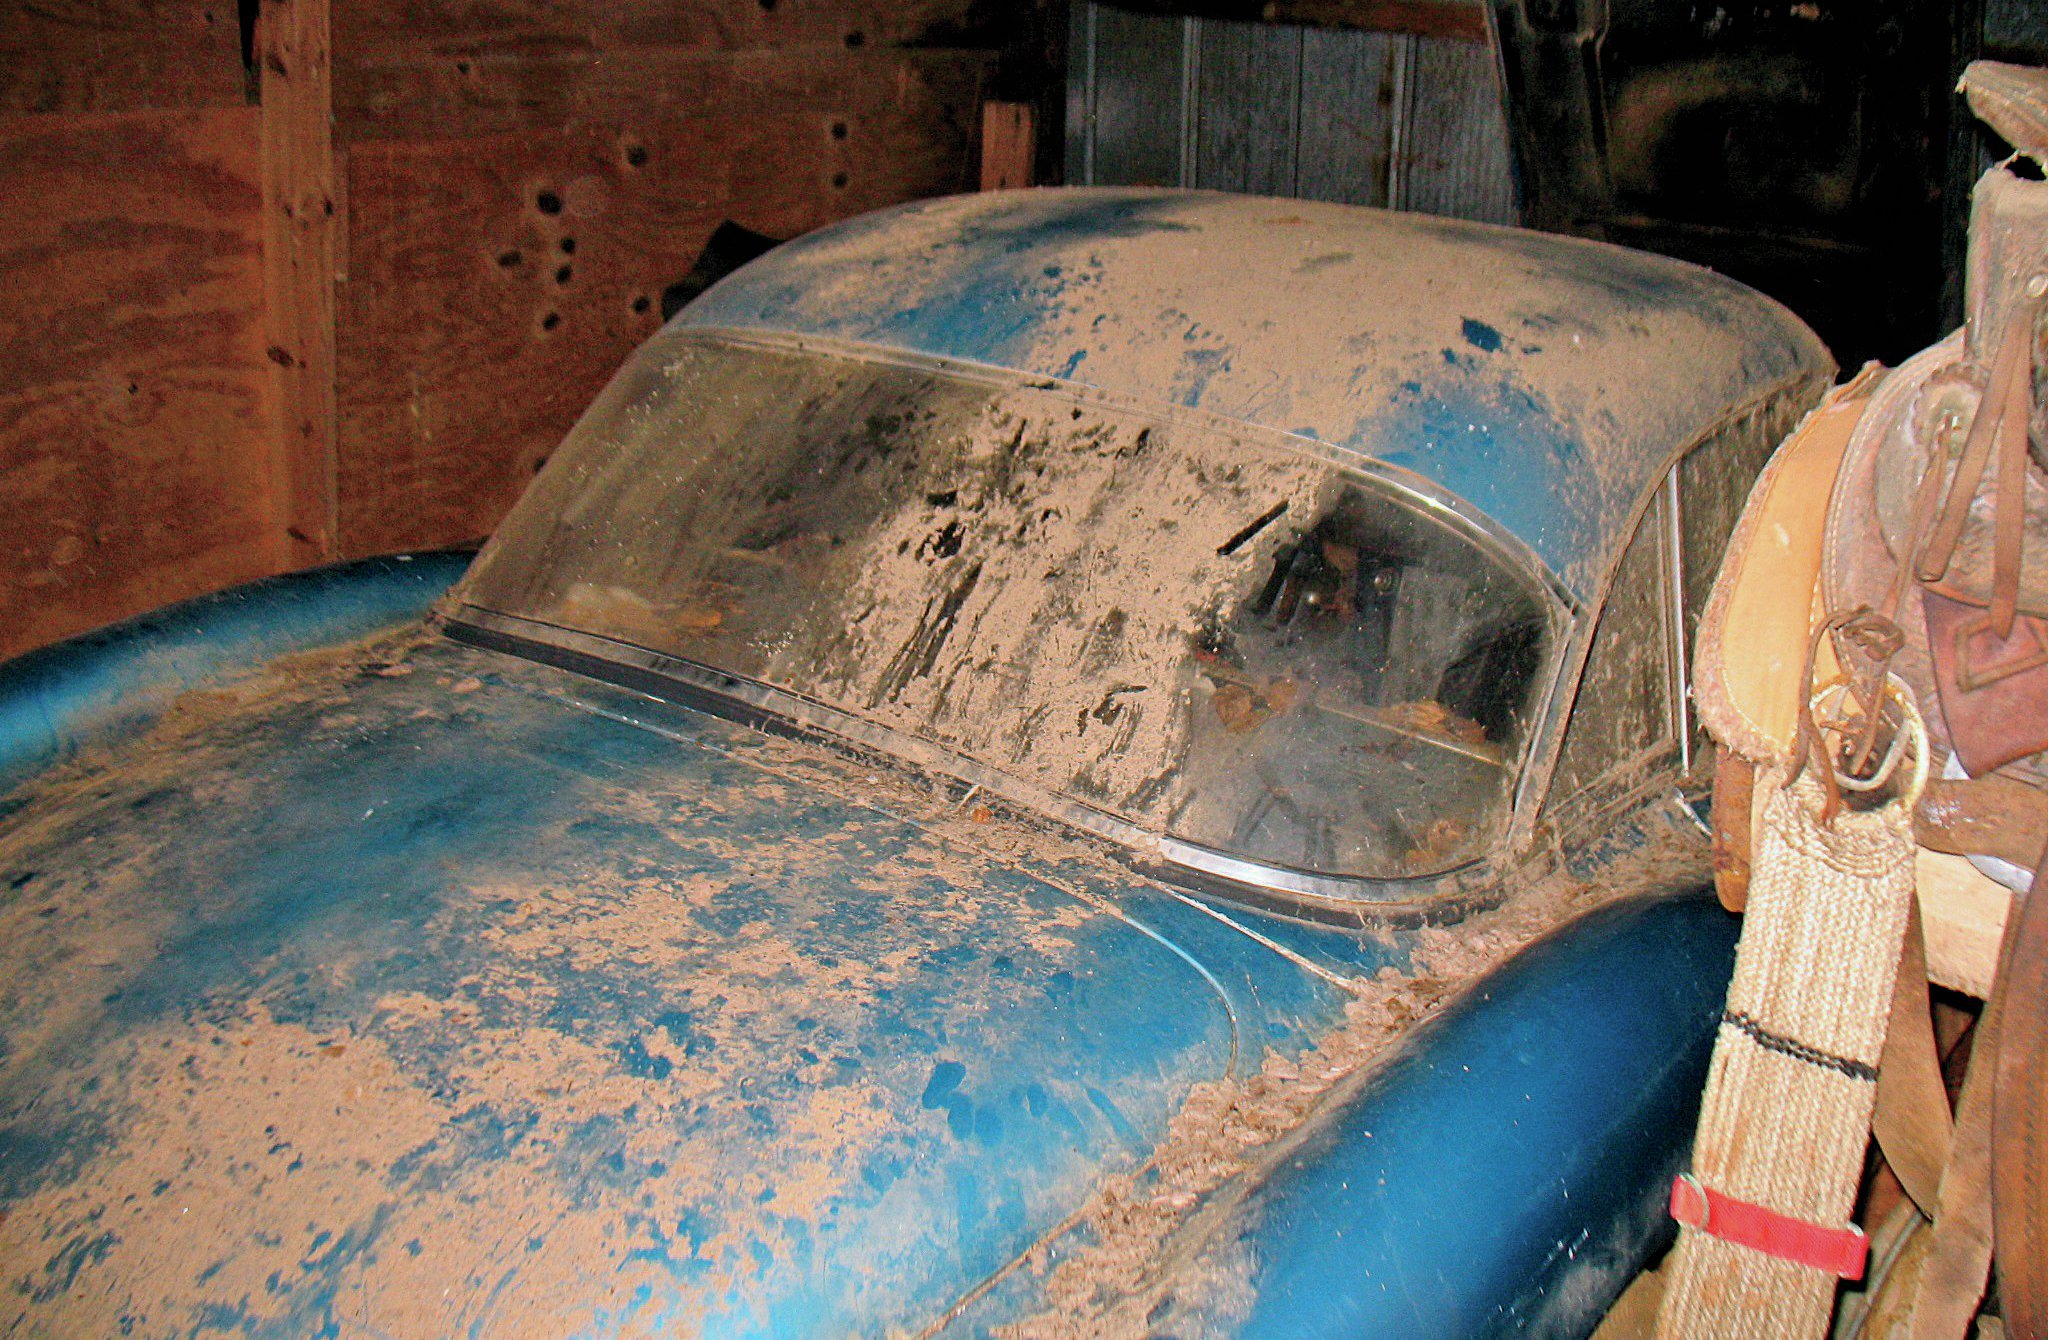 The '59 Vette was walled up inside an inner structure inside a barn.